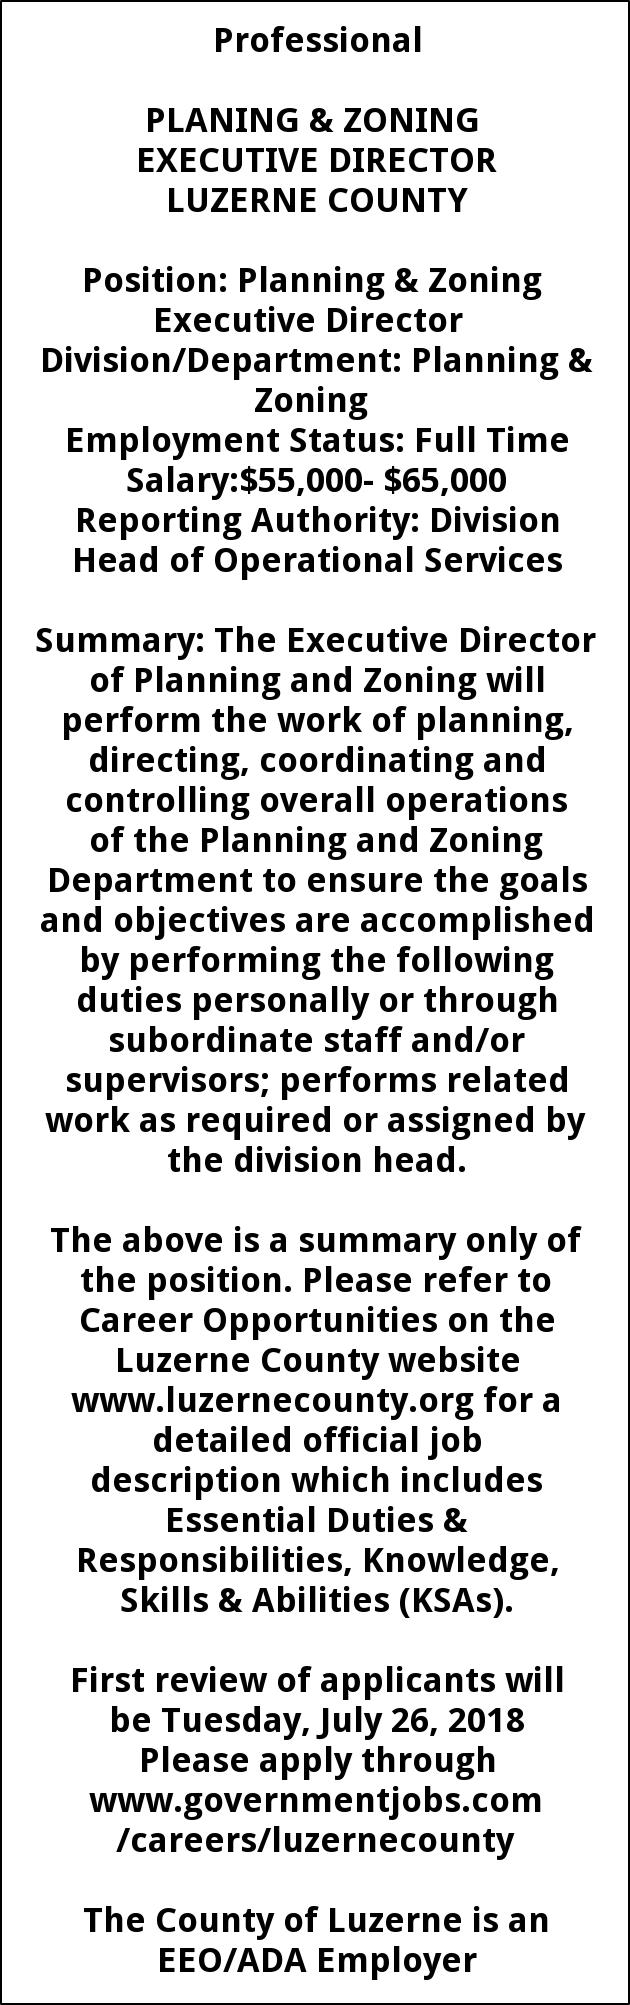 Planning & Zoning Exec Director, Luzerne County